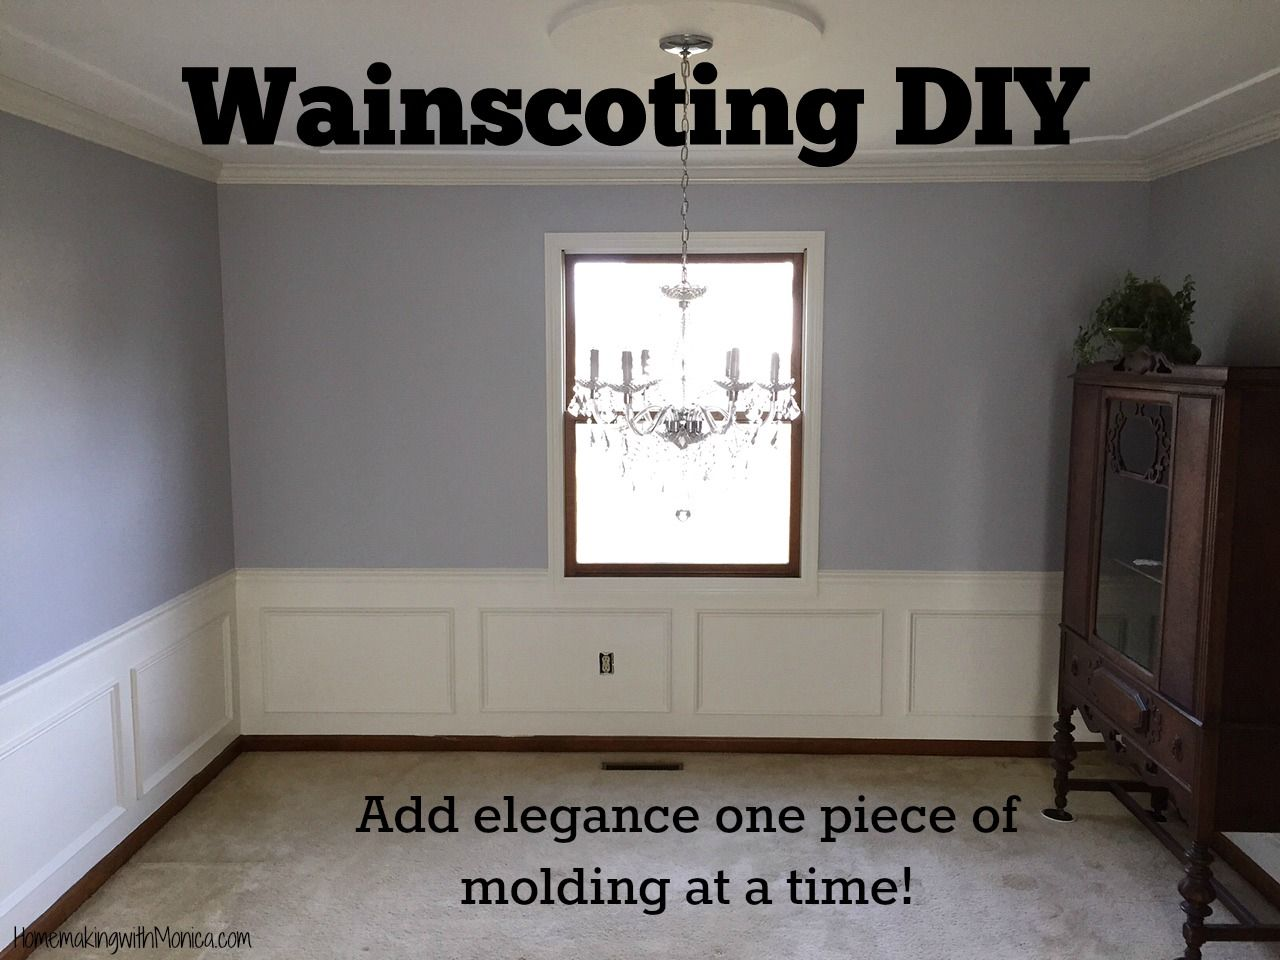 Wainscoting DIY. Add elegance to your home one piece of molding at a time!